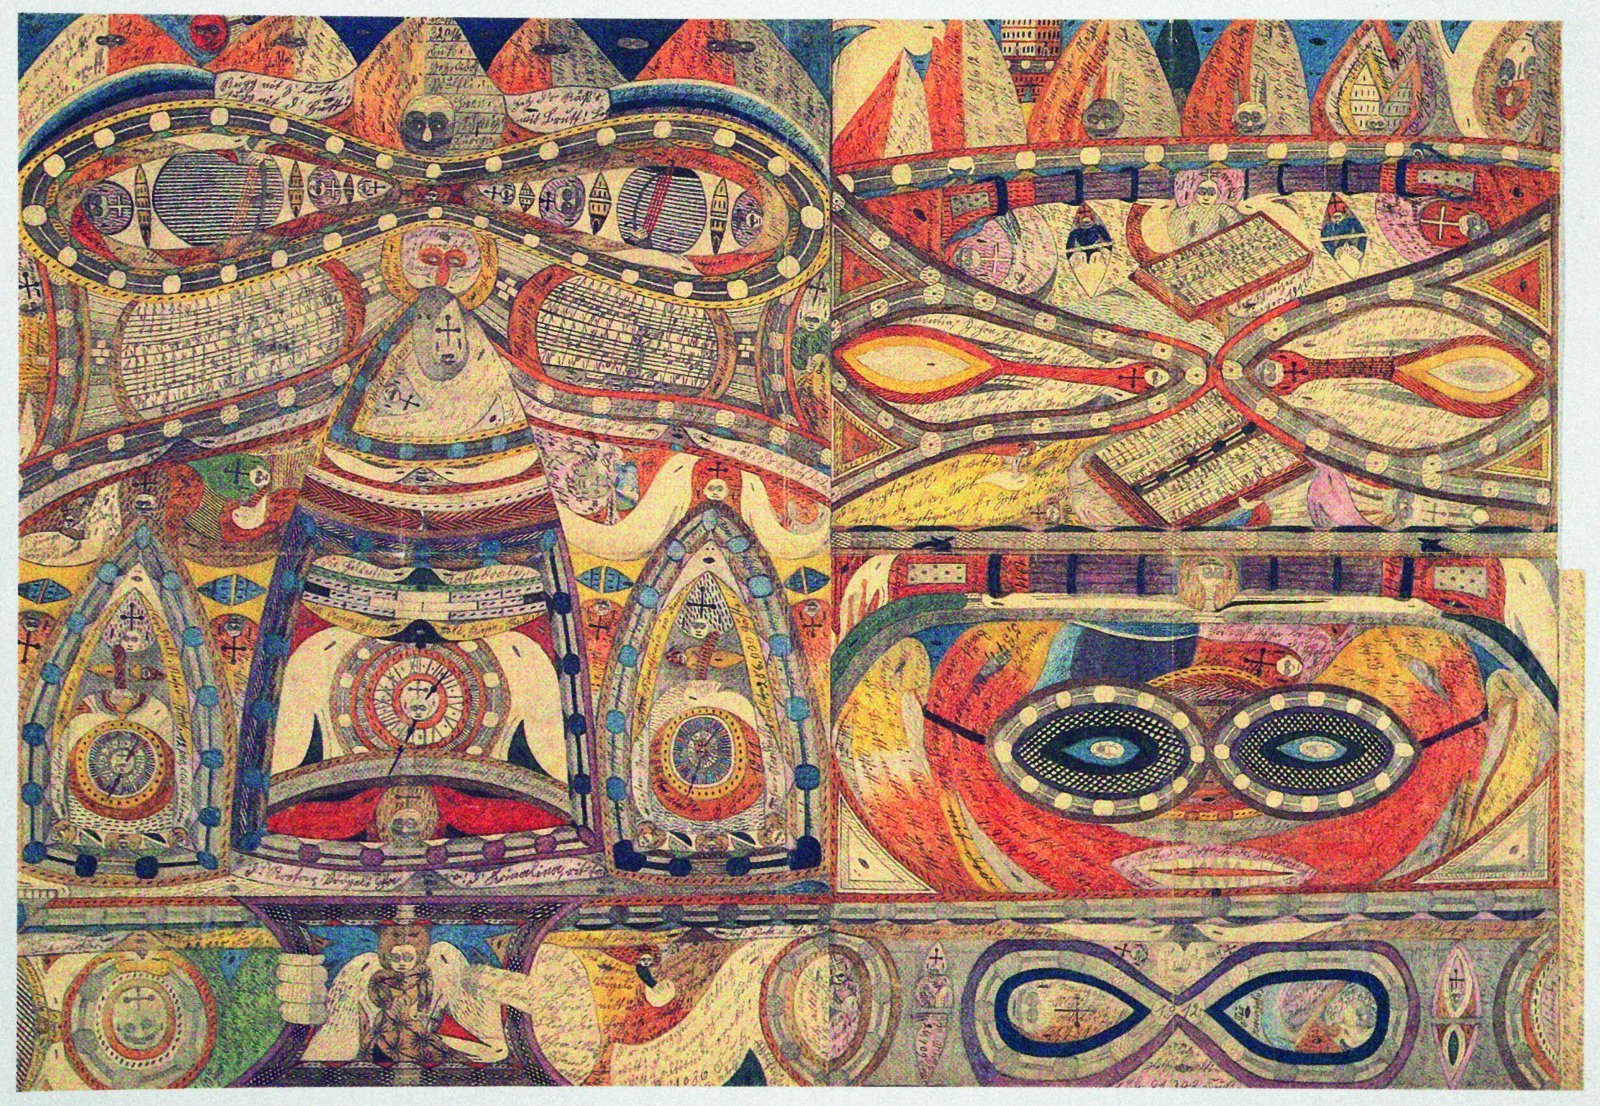 Artists: The Work Of Adolf Wolfli